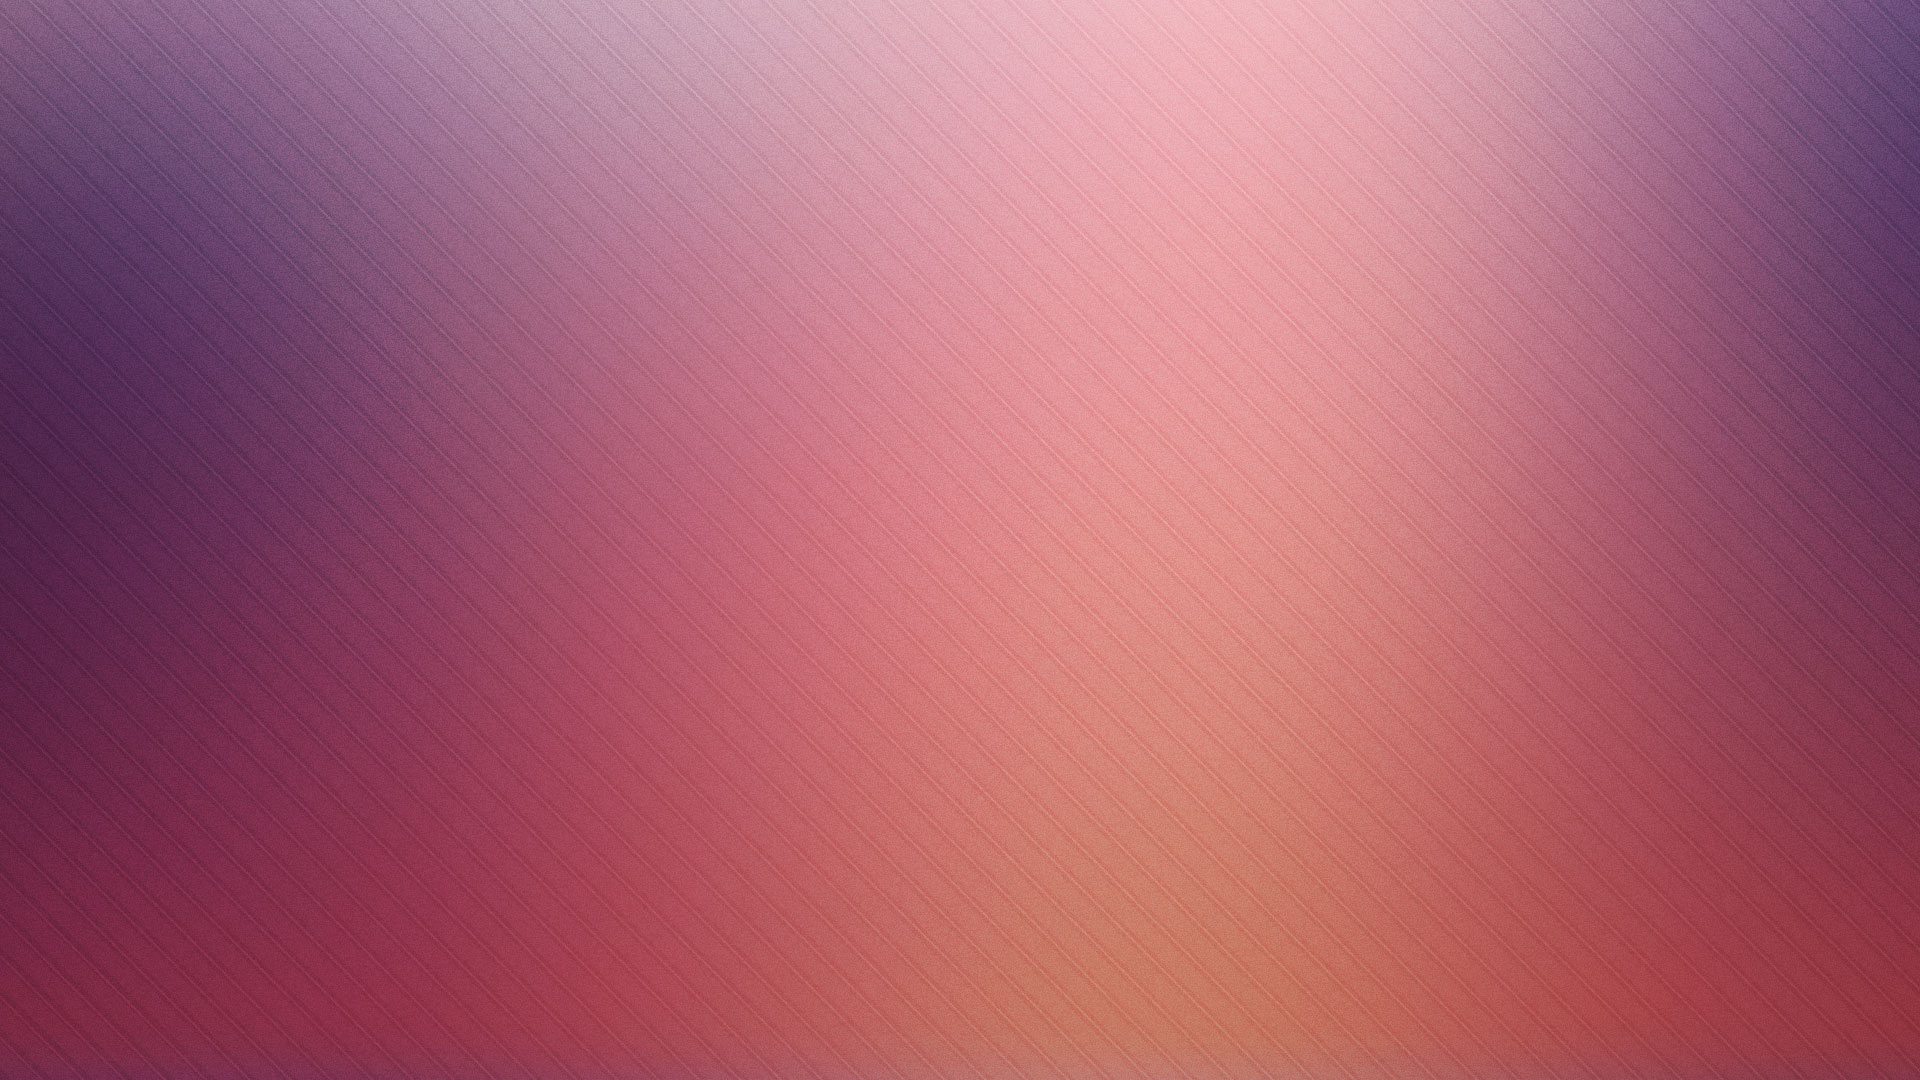 Elegant_Background-6